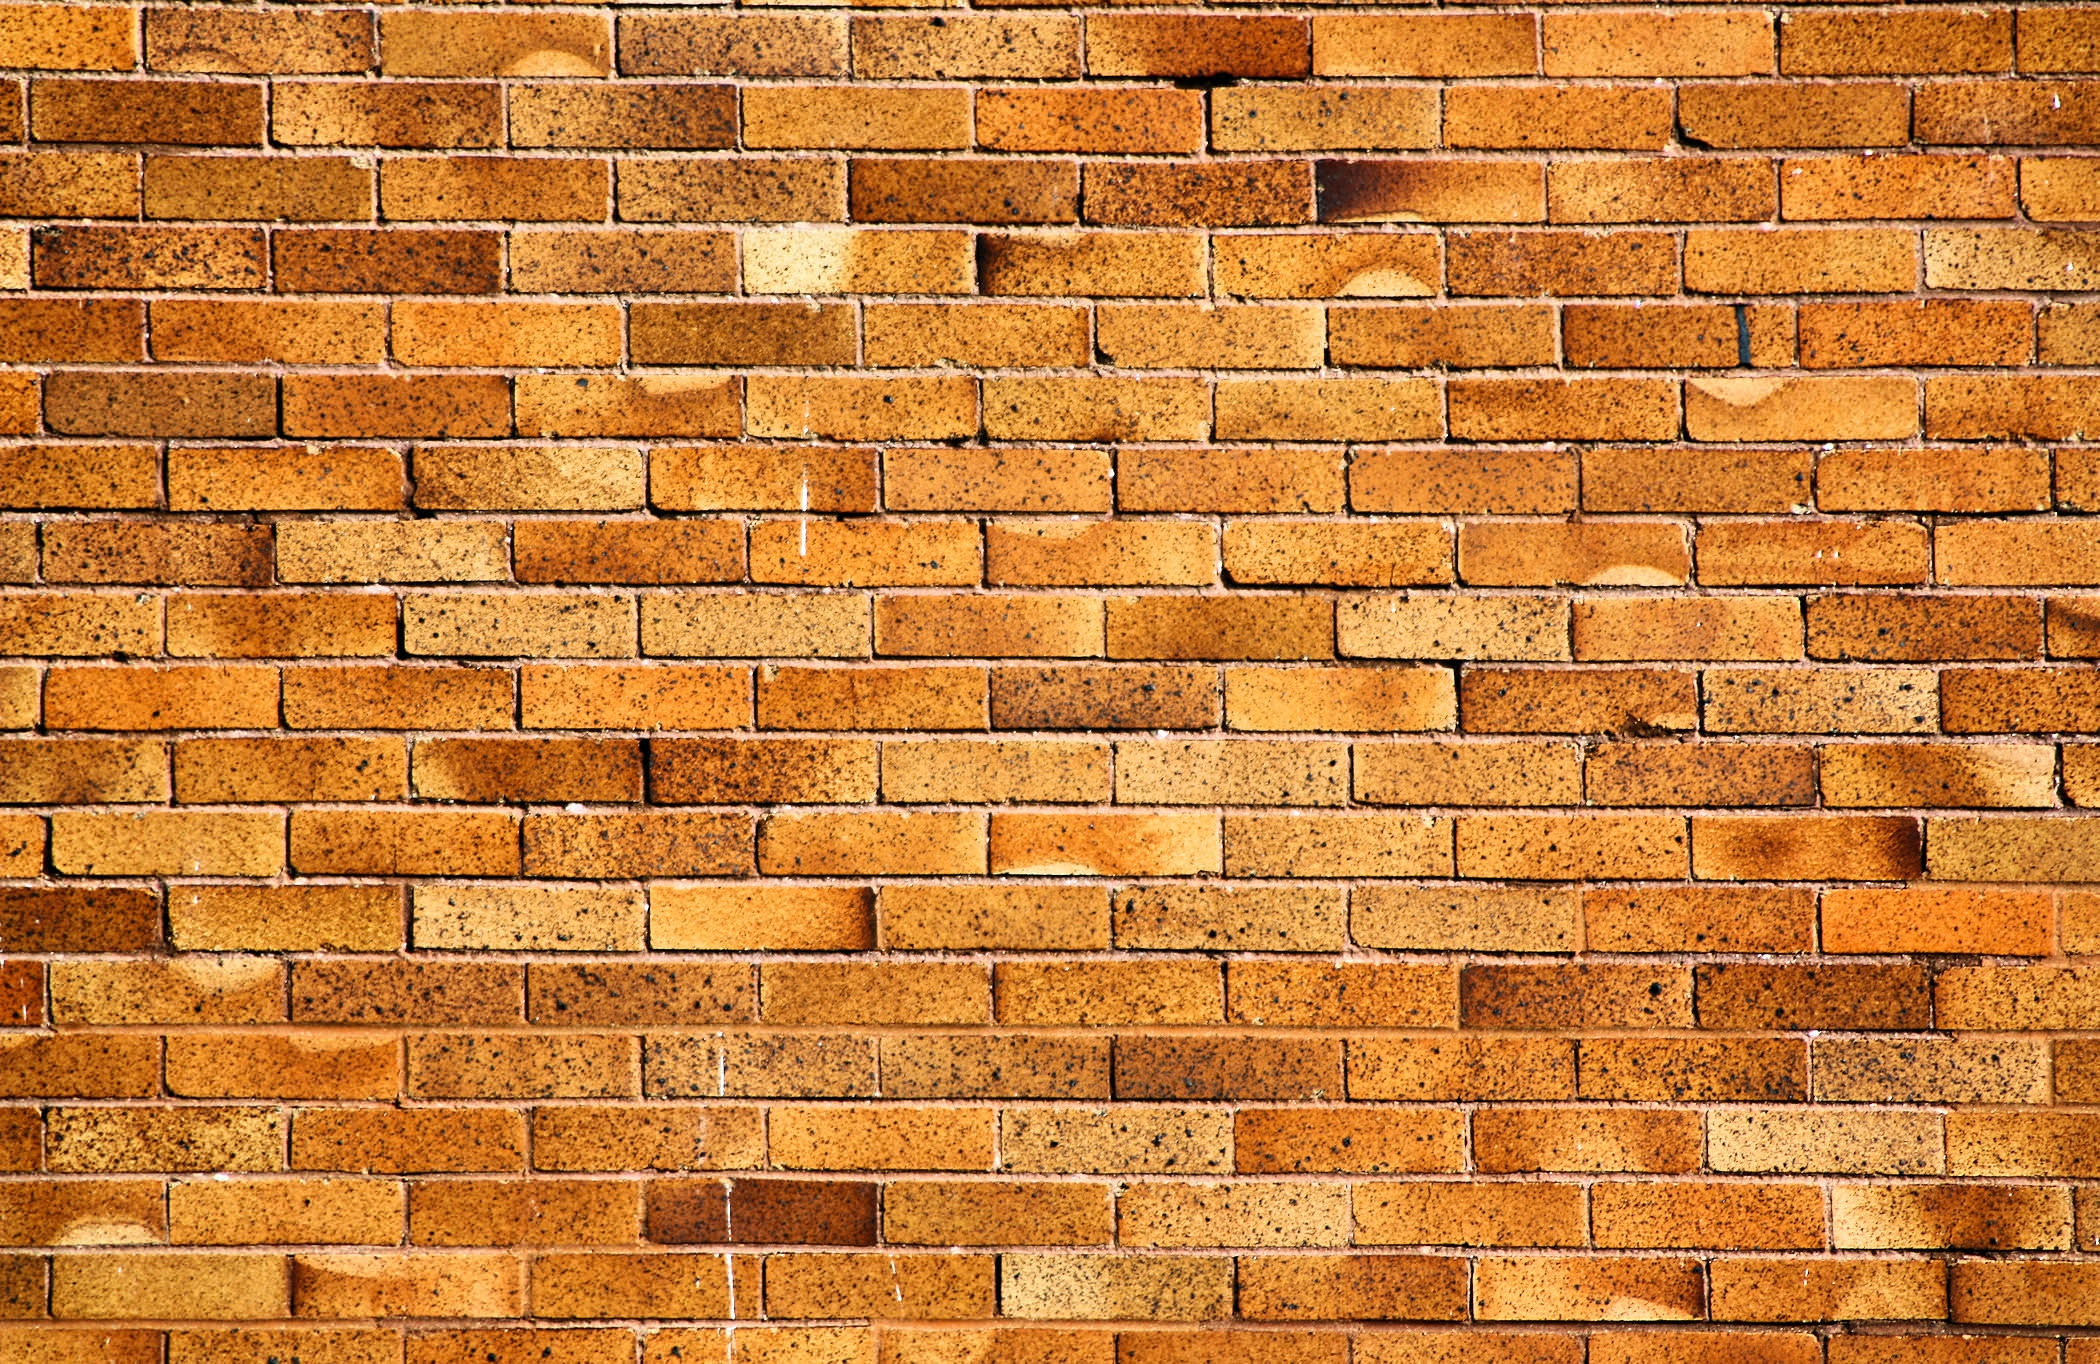 35 brick wall backgrounds psd vector eps jpg download for Wallpapering a wall